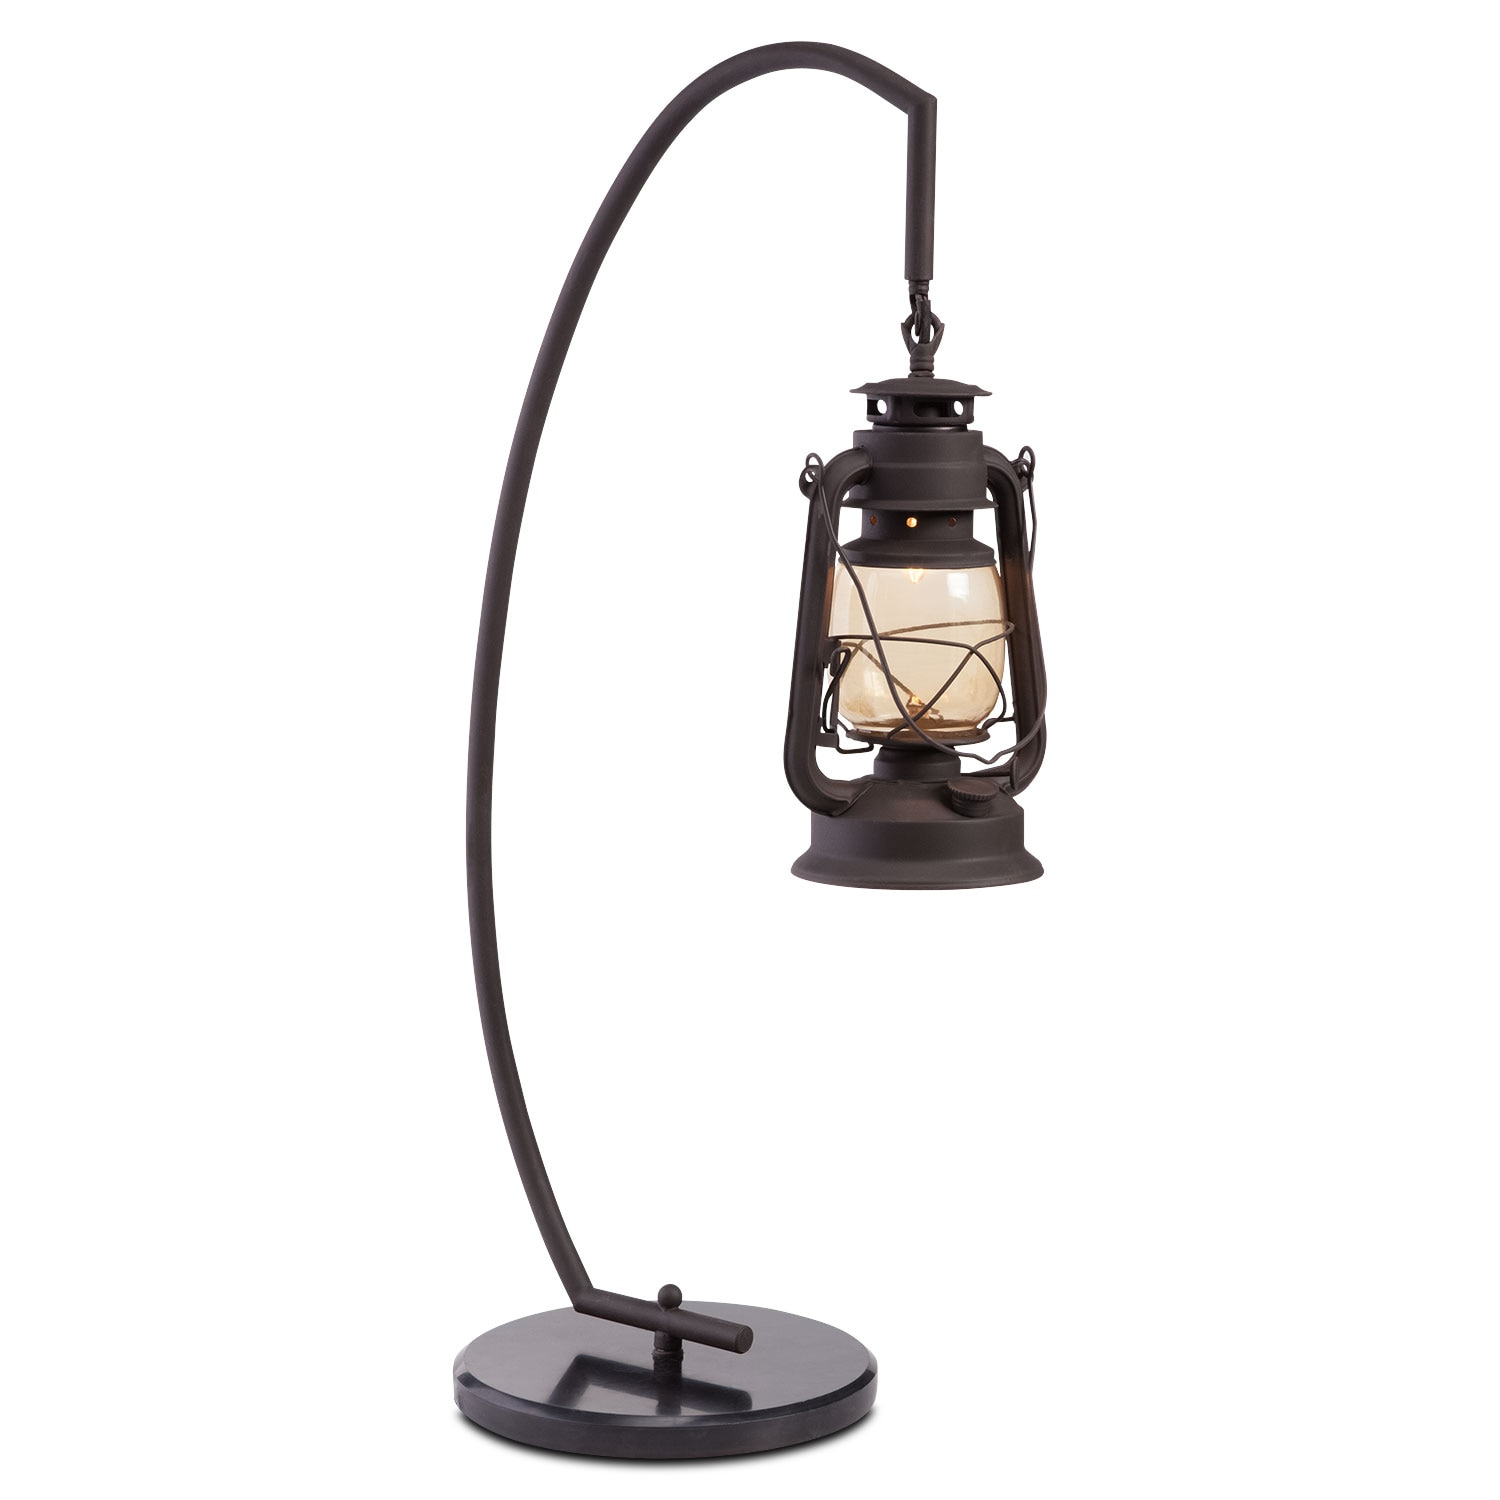 lantern table lamp value city furniture